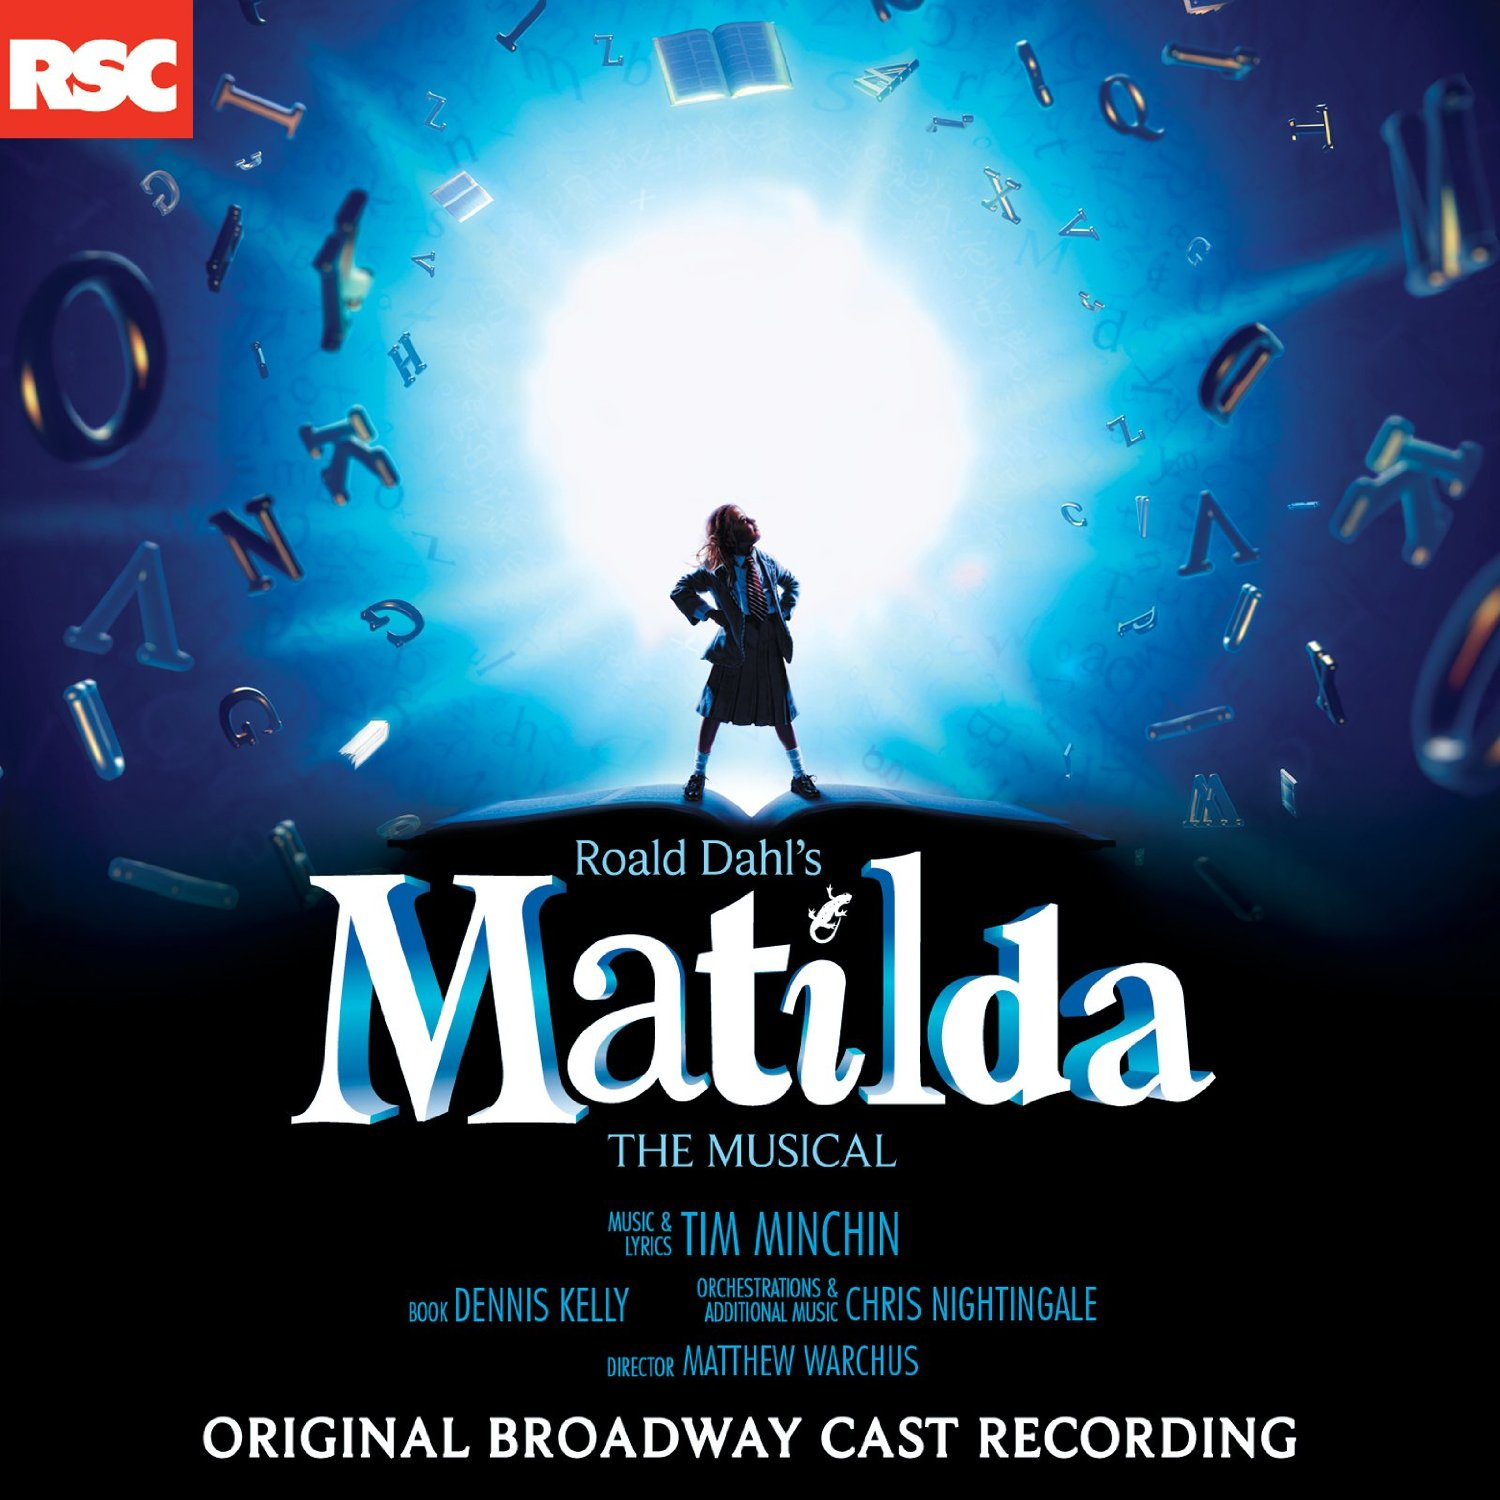 'Matilda' – Original Broadway Cast Recording